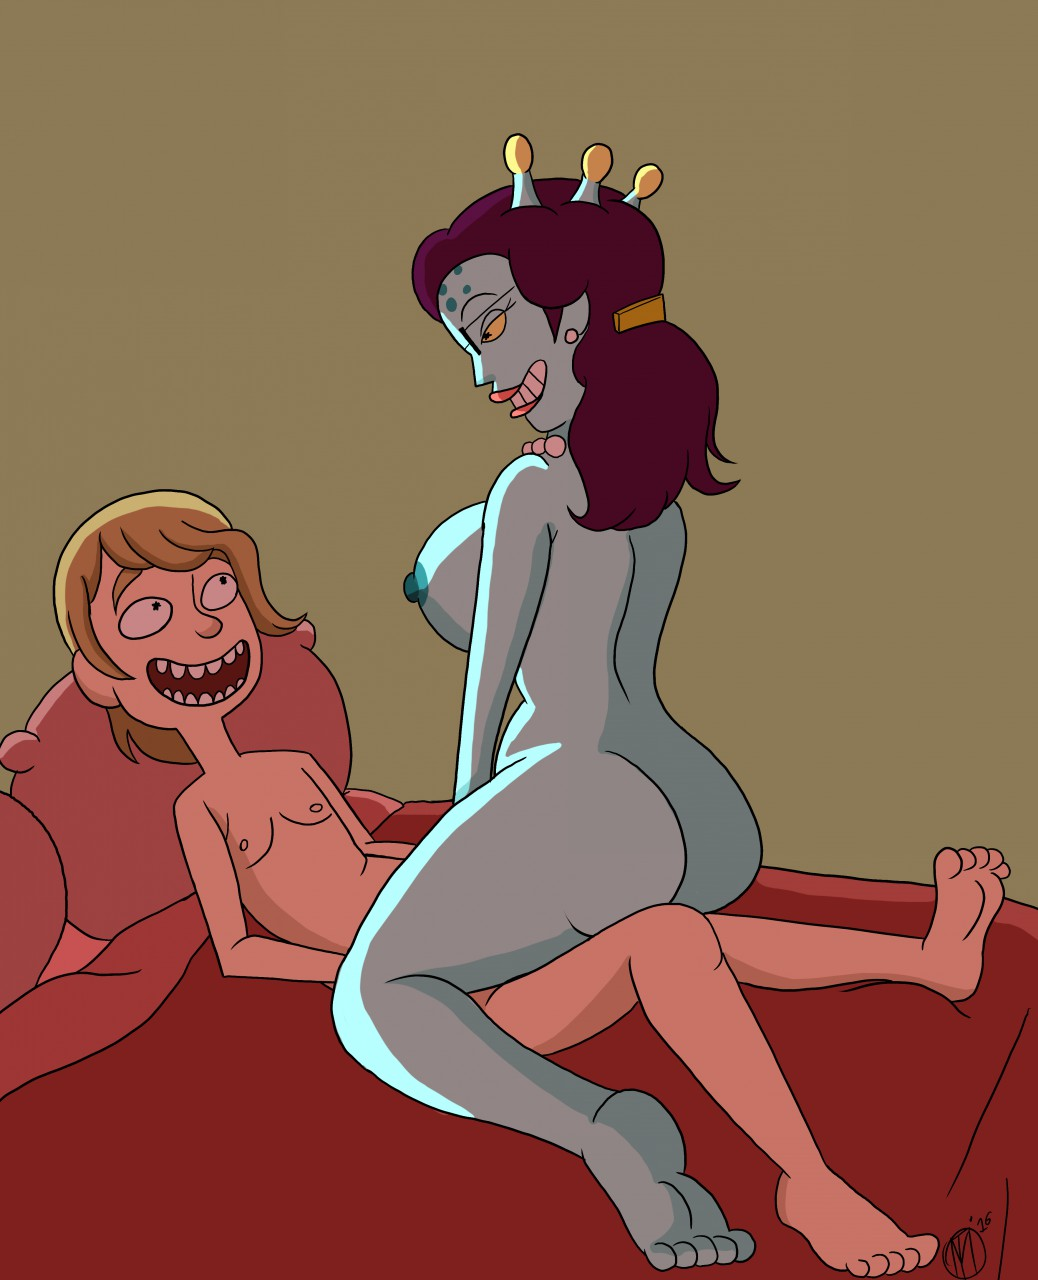 cat talking rick and morty Star wars the force awakens nude